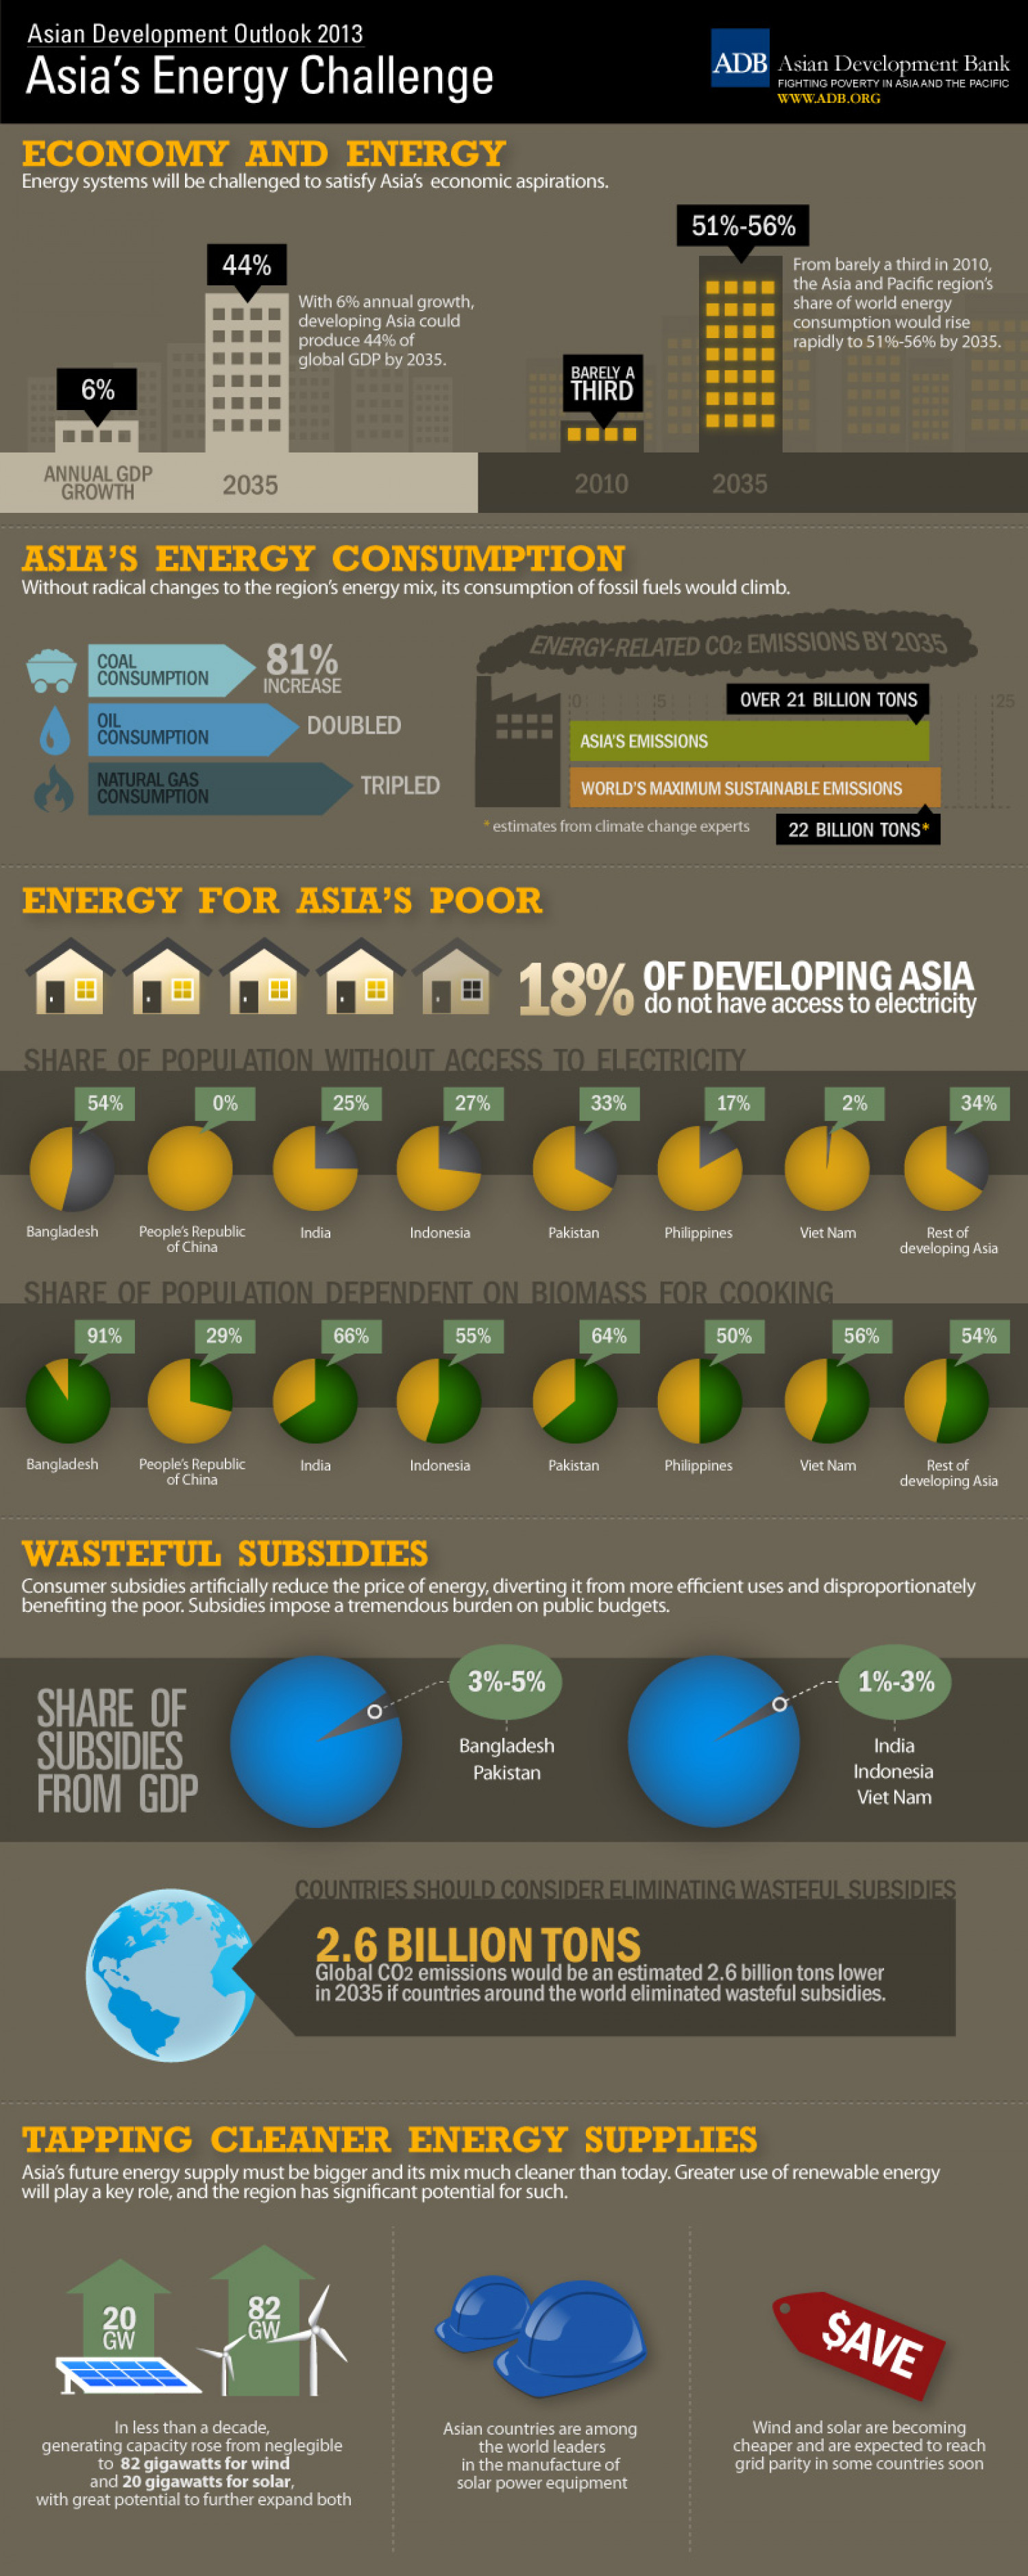 Asian Development Outlook 2013: Asia's Energy Challenge Infographic